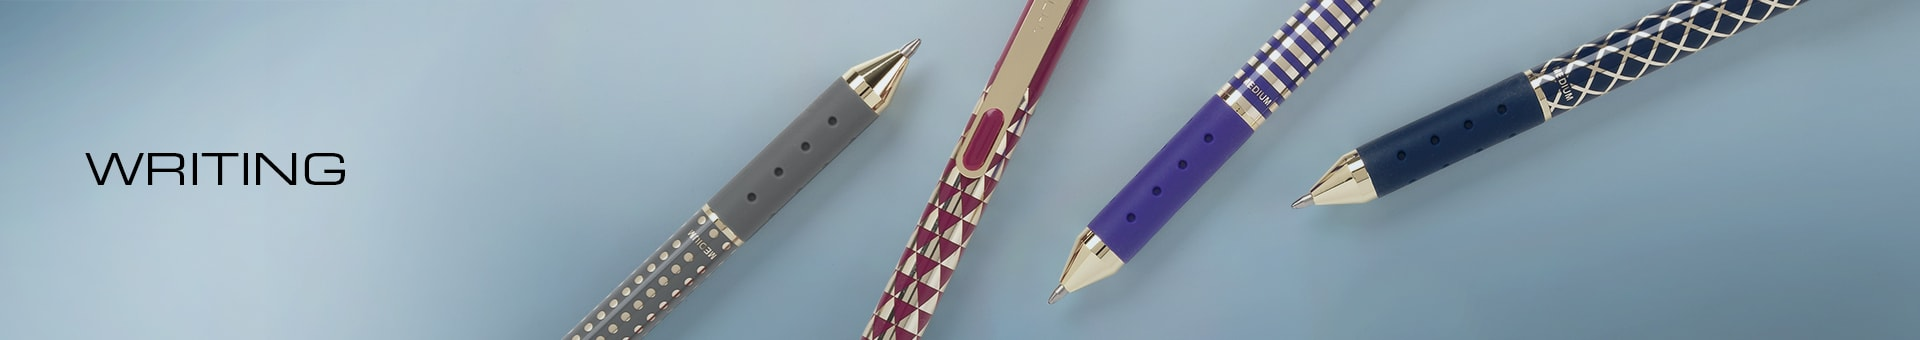 Writing with TUL Limited Edition Pens